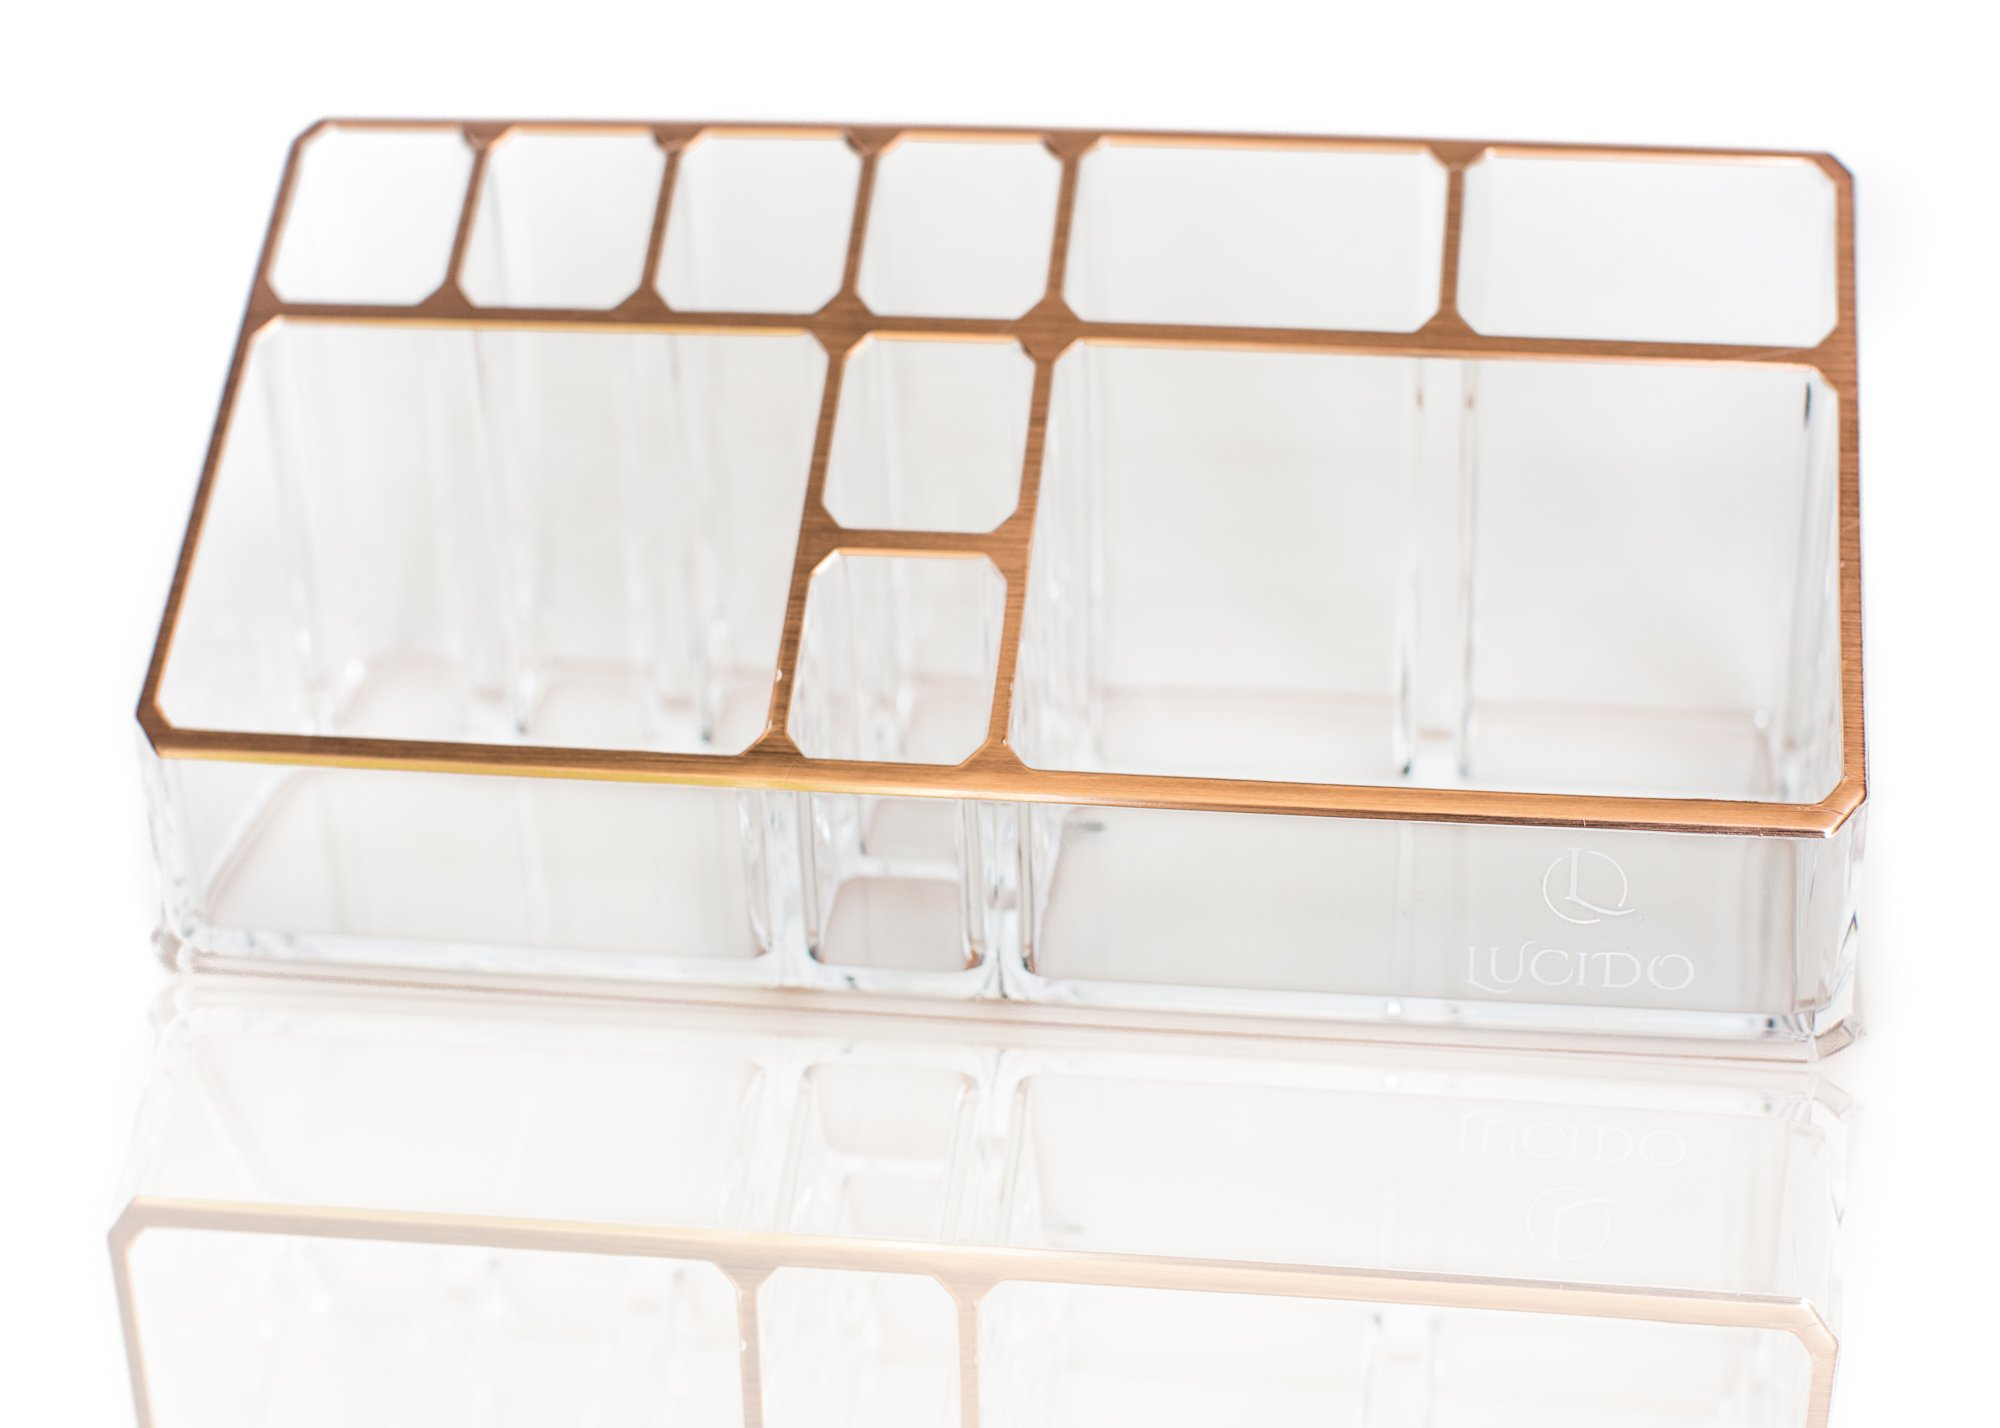 Rose Gold Acrylic Cosmetics Makeup Jewelry Stationery Organizer Holder Desk Caddy by Lucido Cosmetics